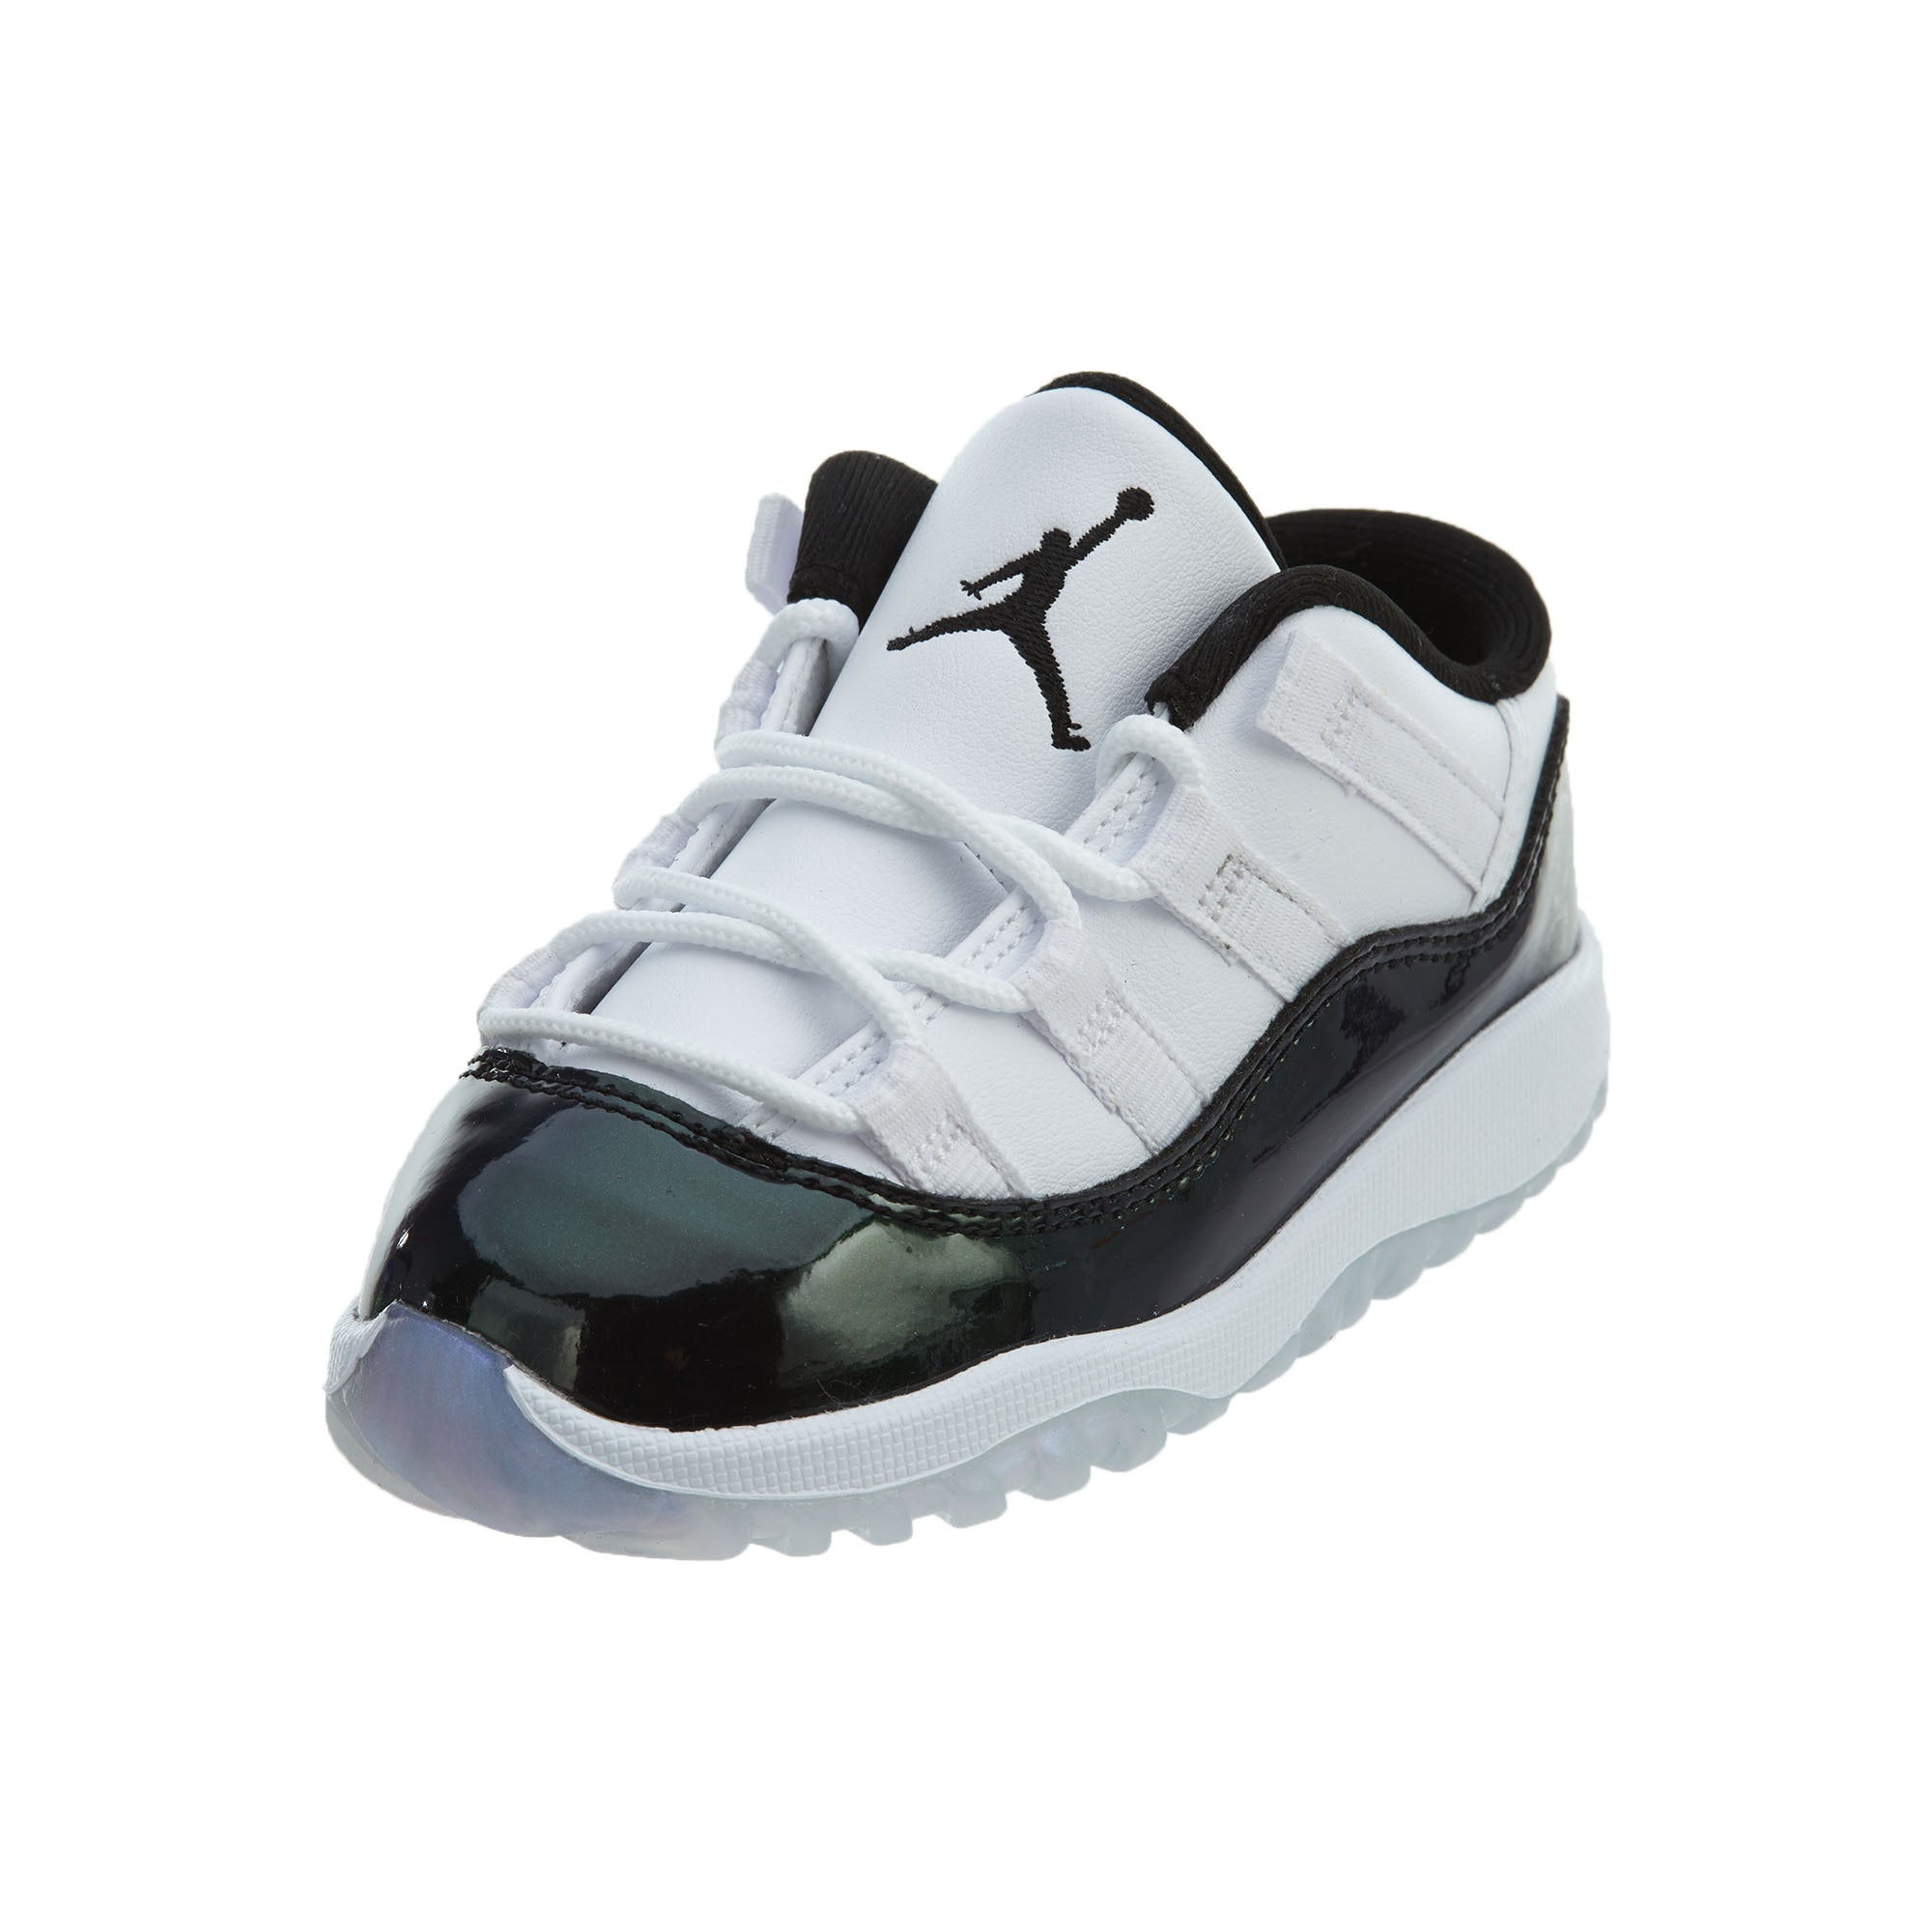 2e6e7bcdd5 Jordan 11 Retro Low Toddlers Style : 505836 – TheEagleShoes